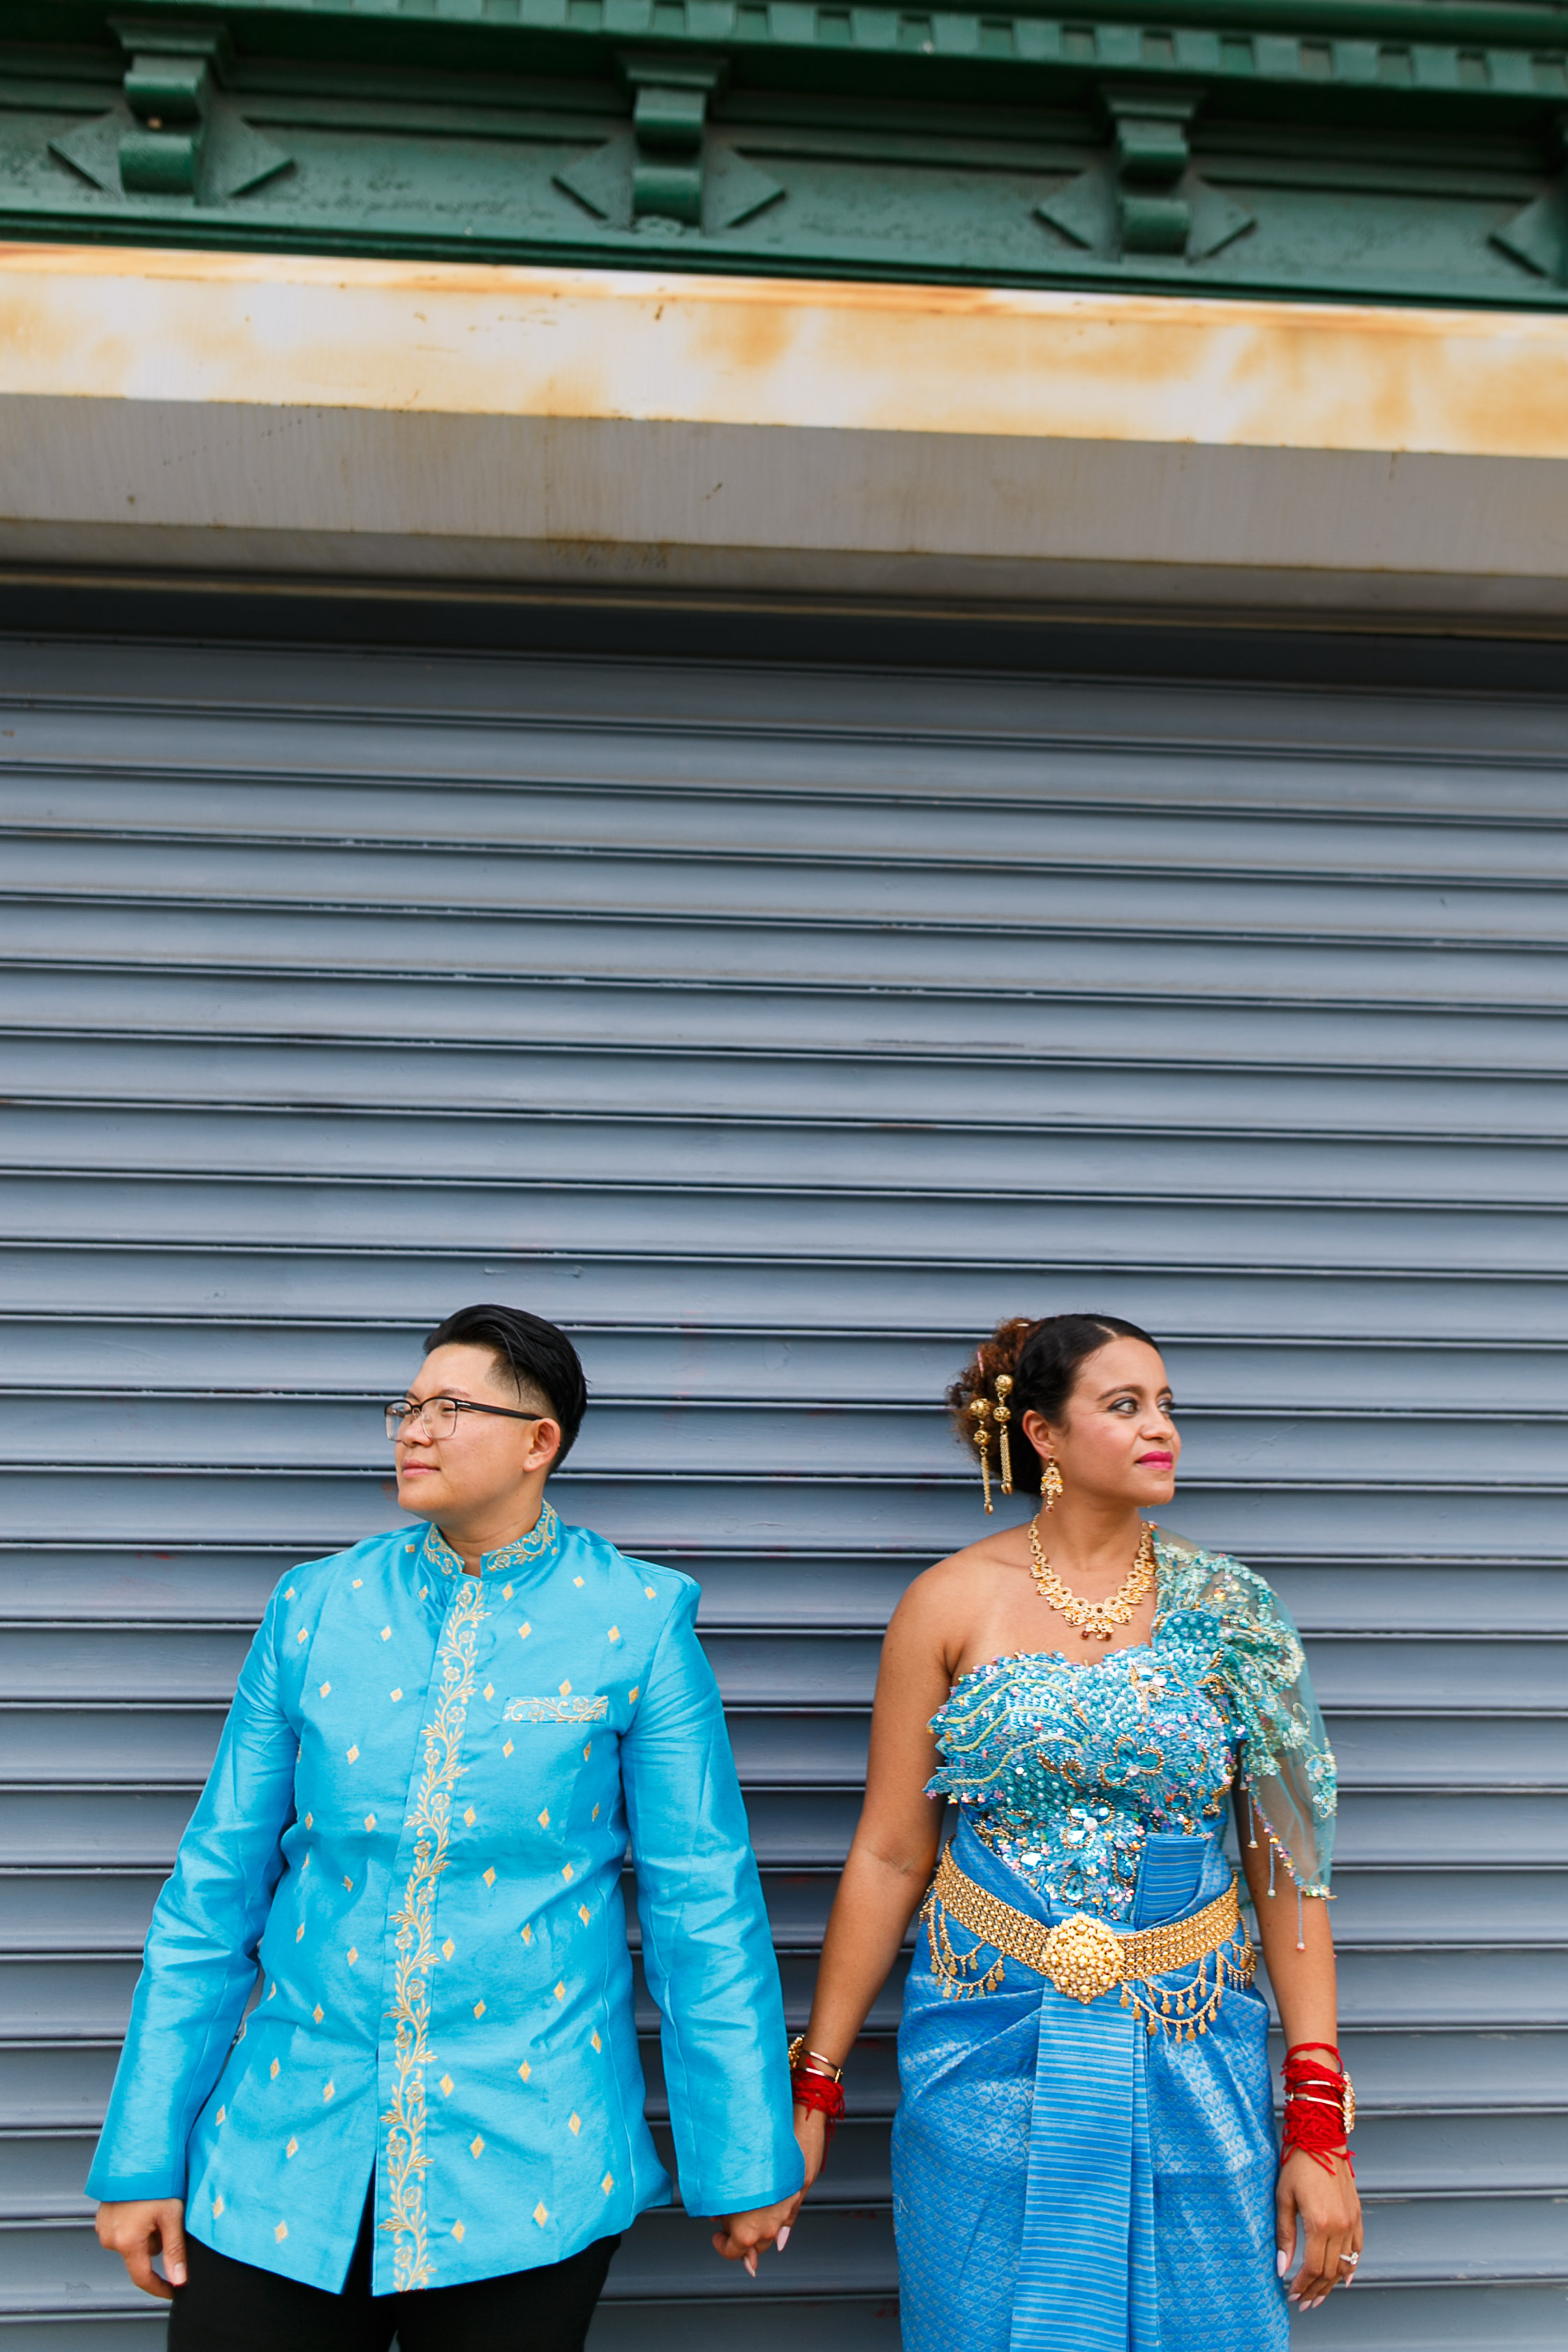 Philadelphia LGBTQ Cambodian Wedding 78.jpg